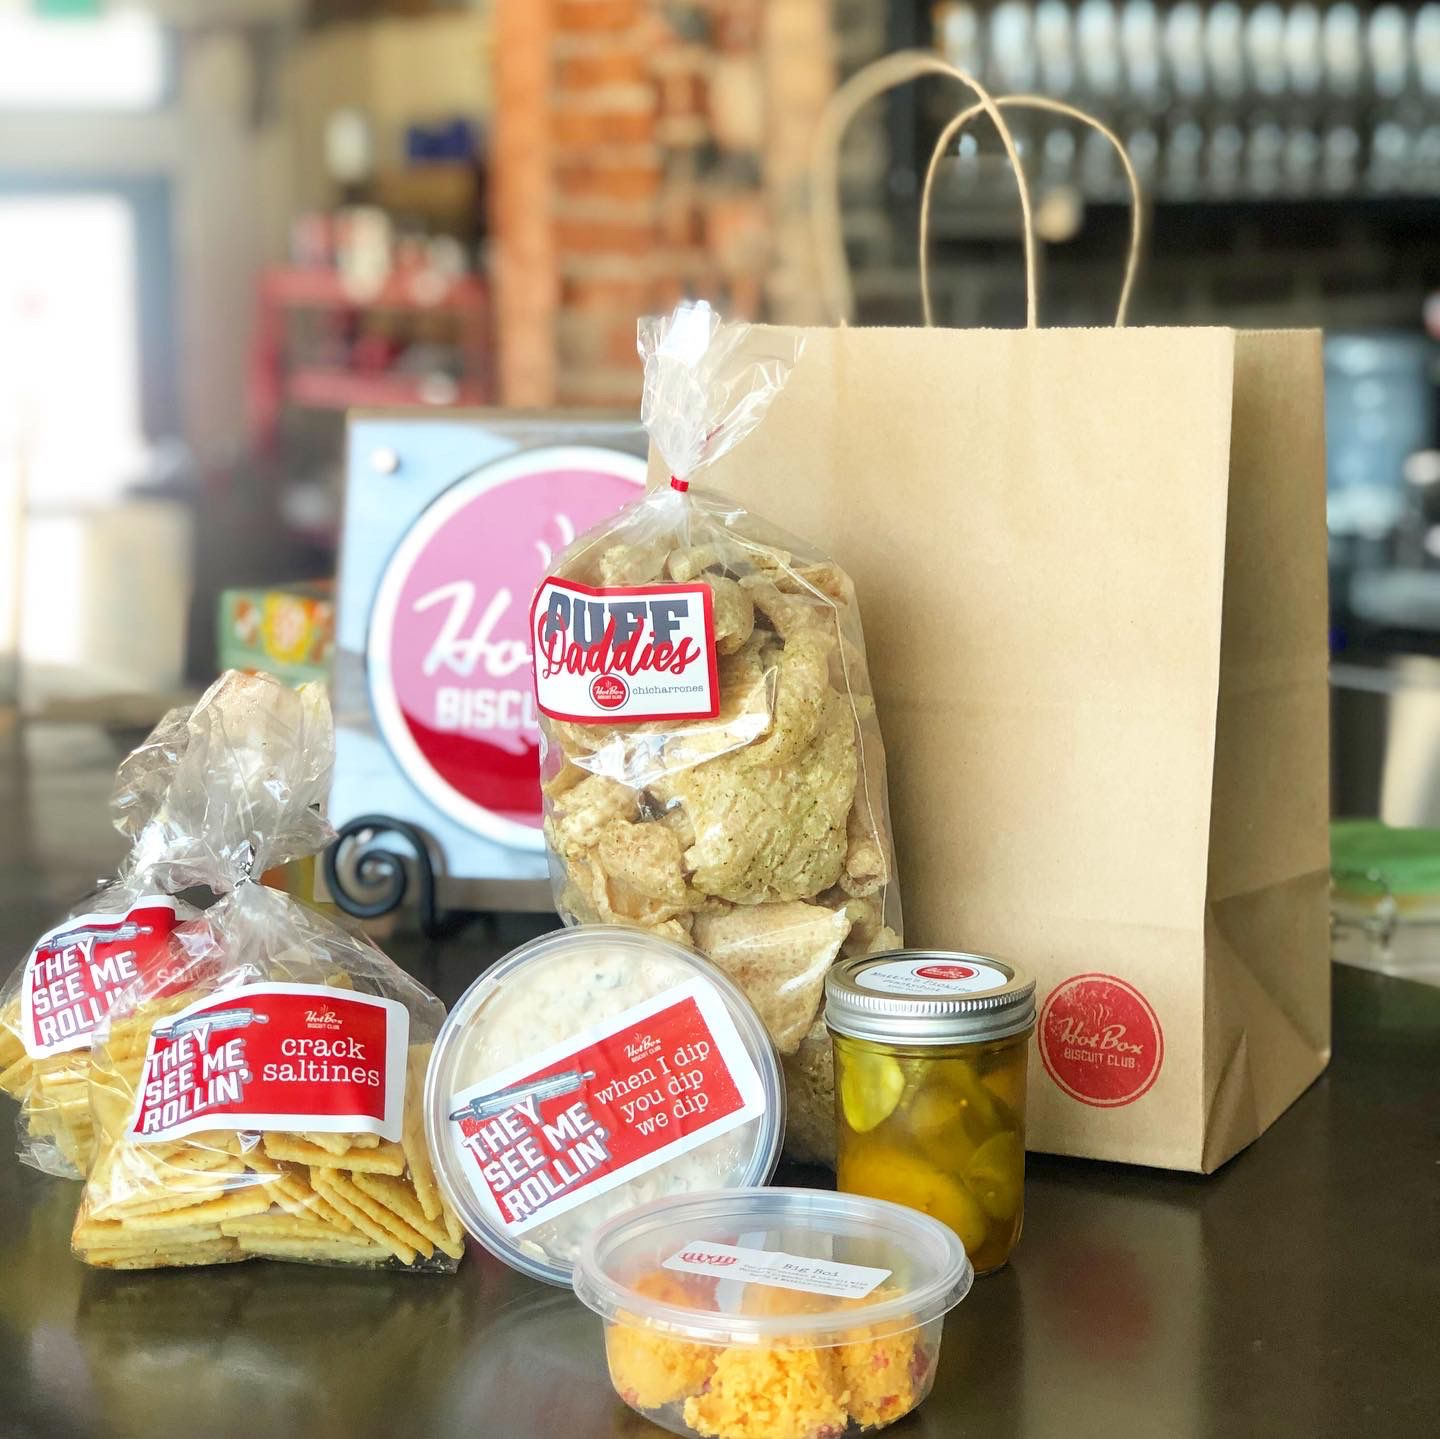 Hot Box Biscuit Club is selling snack packages with chips and dip.